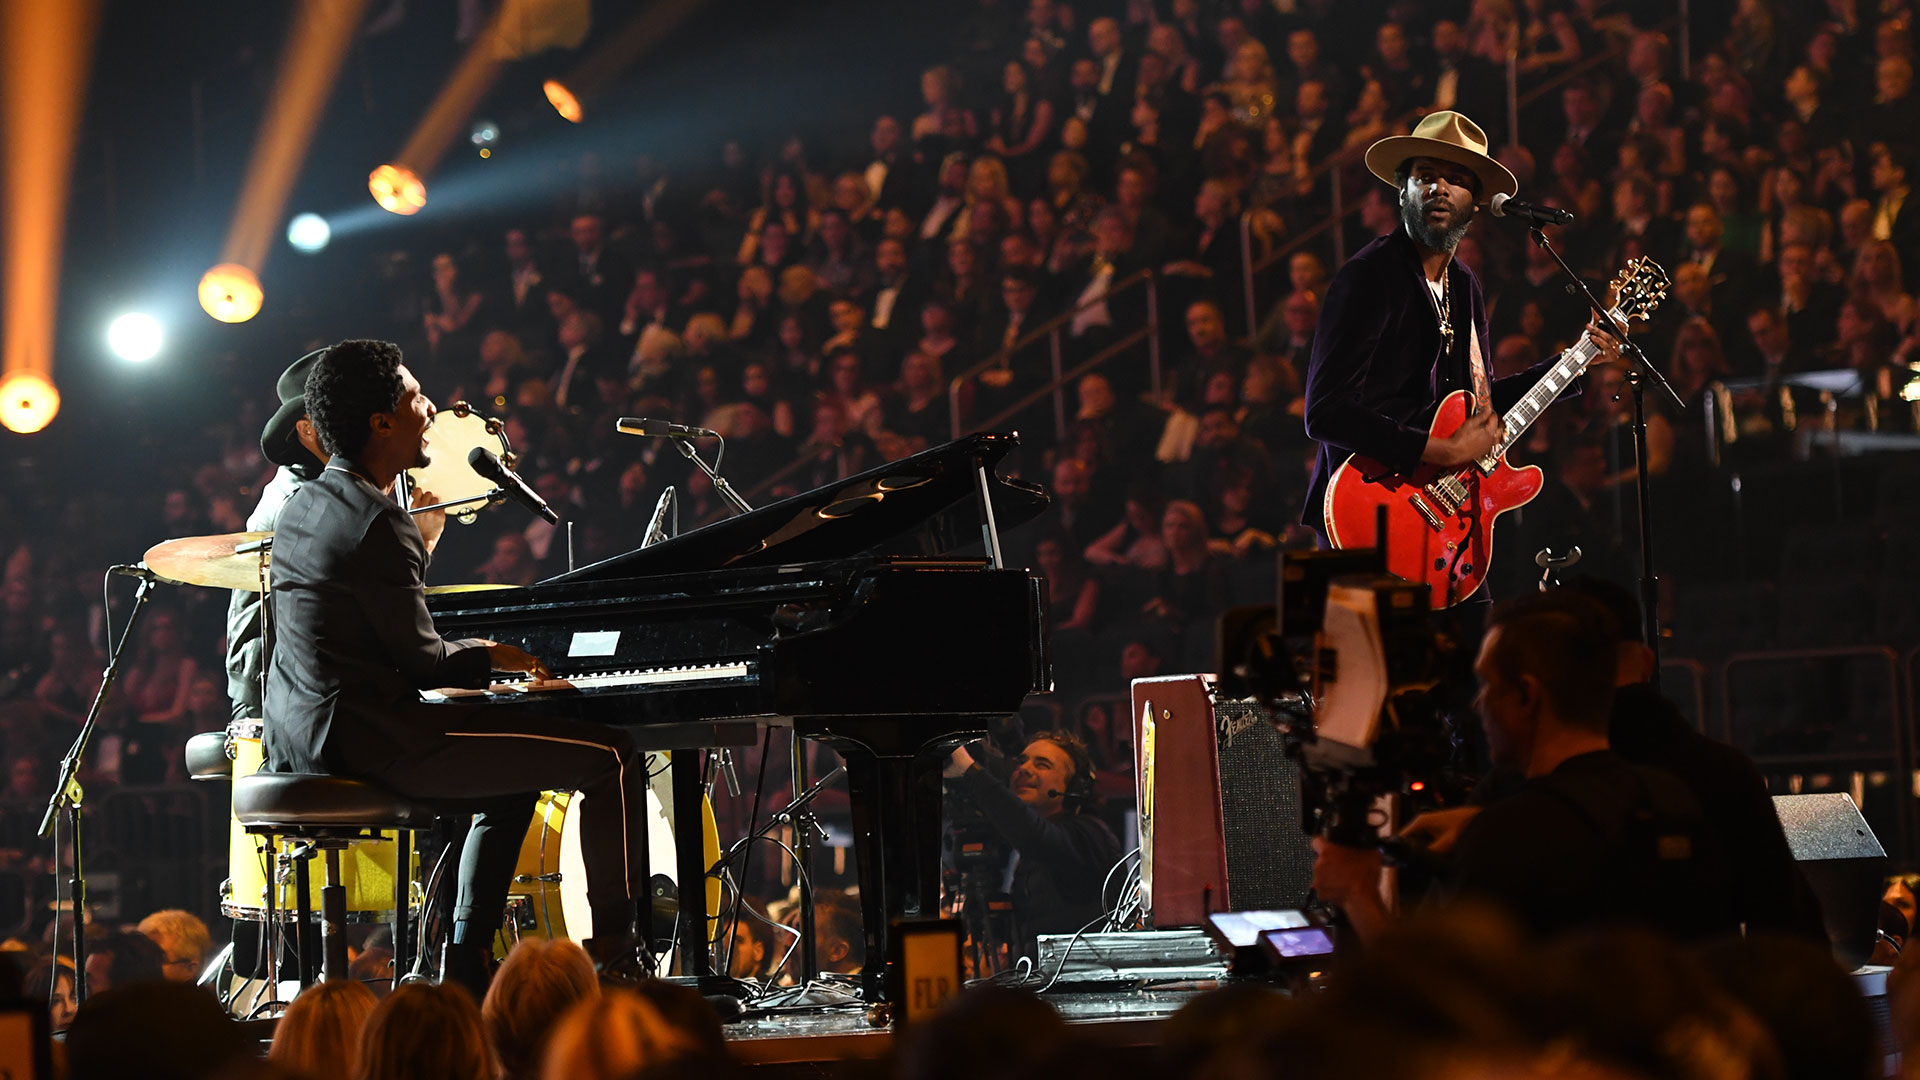 Gary Clark Jr. and Jon Batiste pay tribute to rock pioneers Chuck Berry and Fats Domino with a bluesy medley of